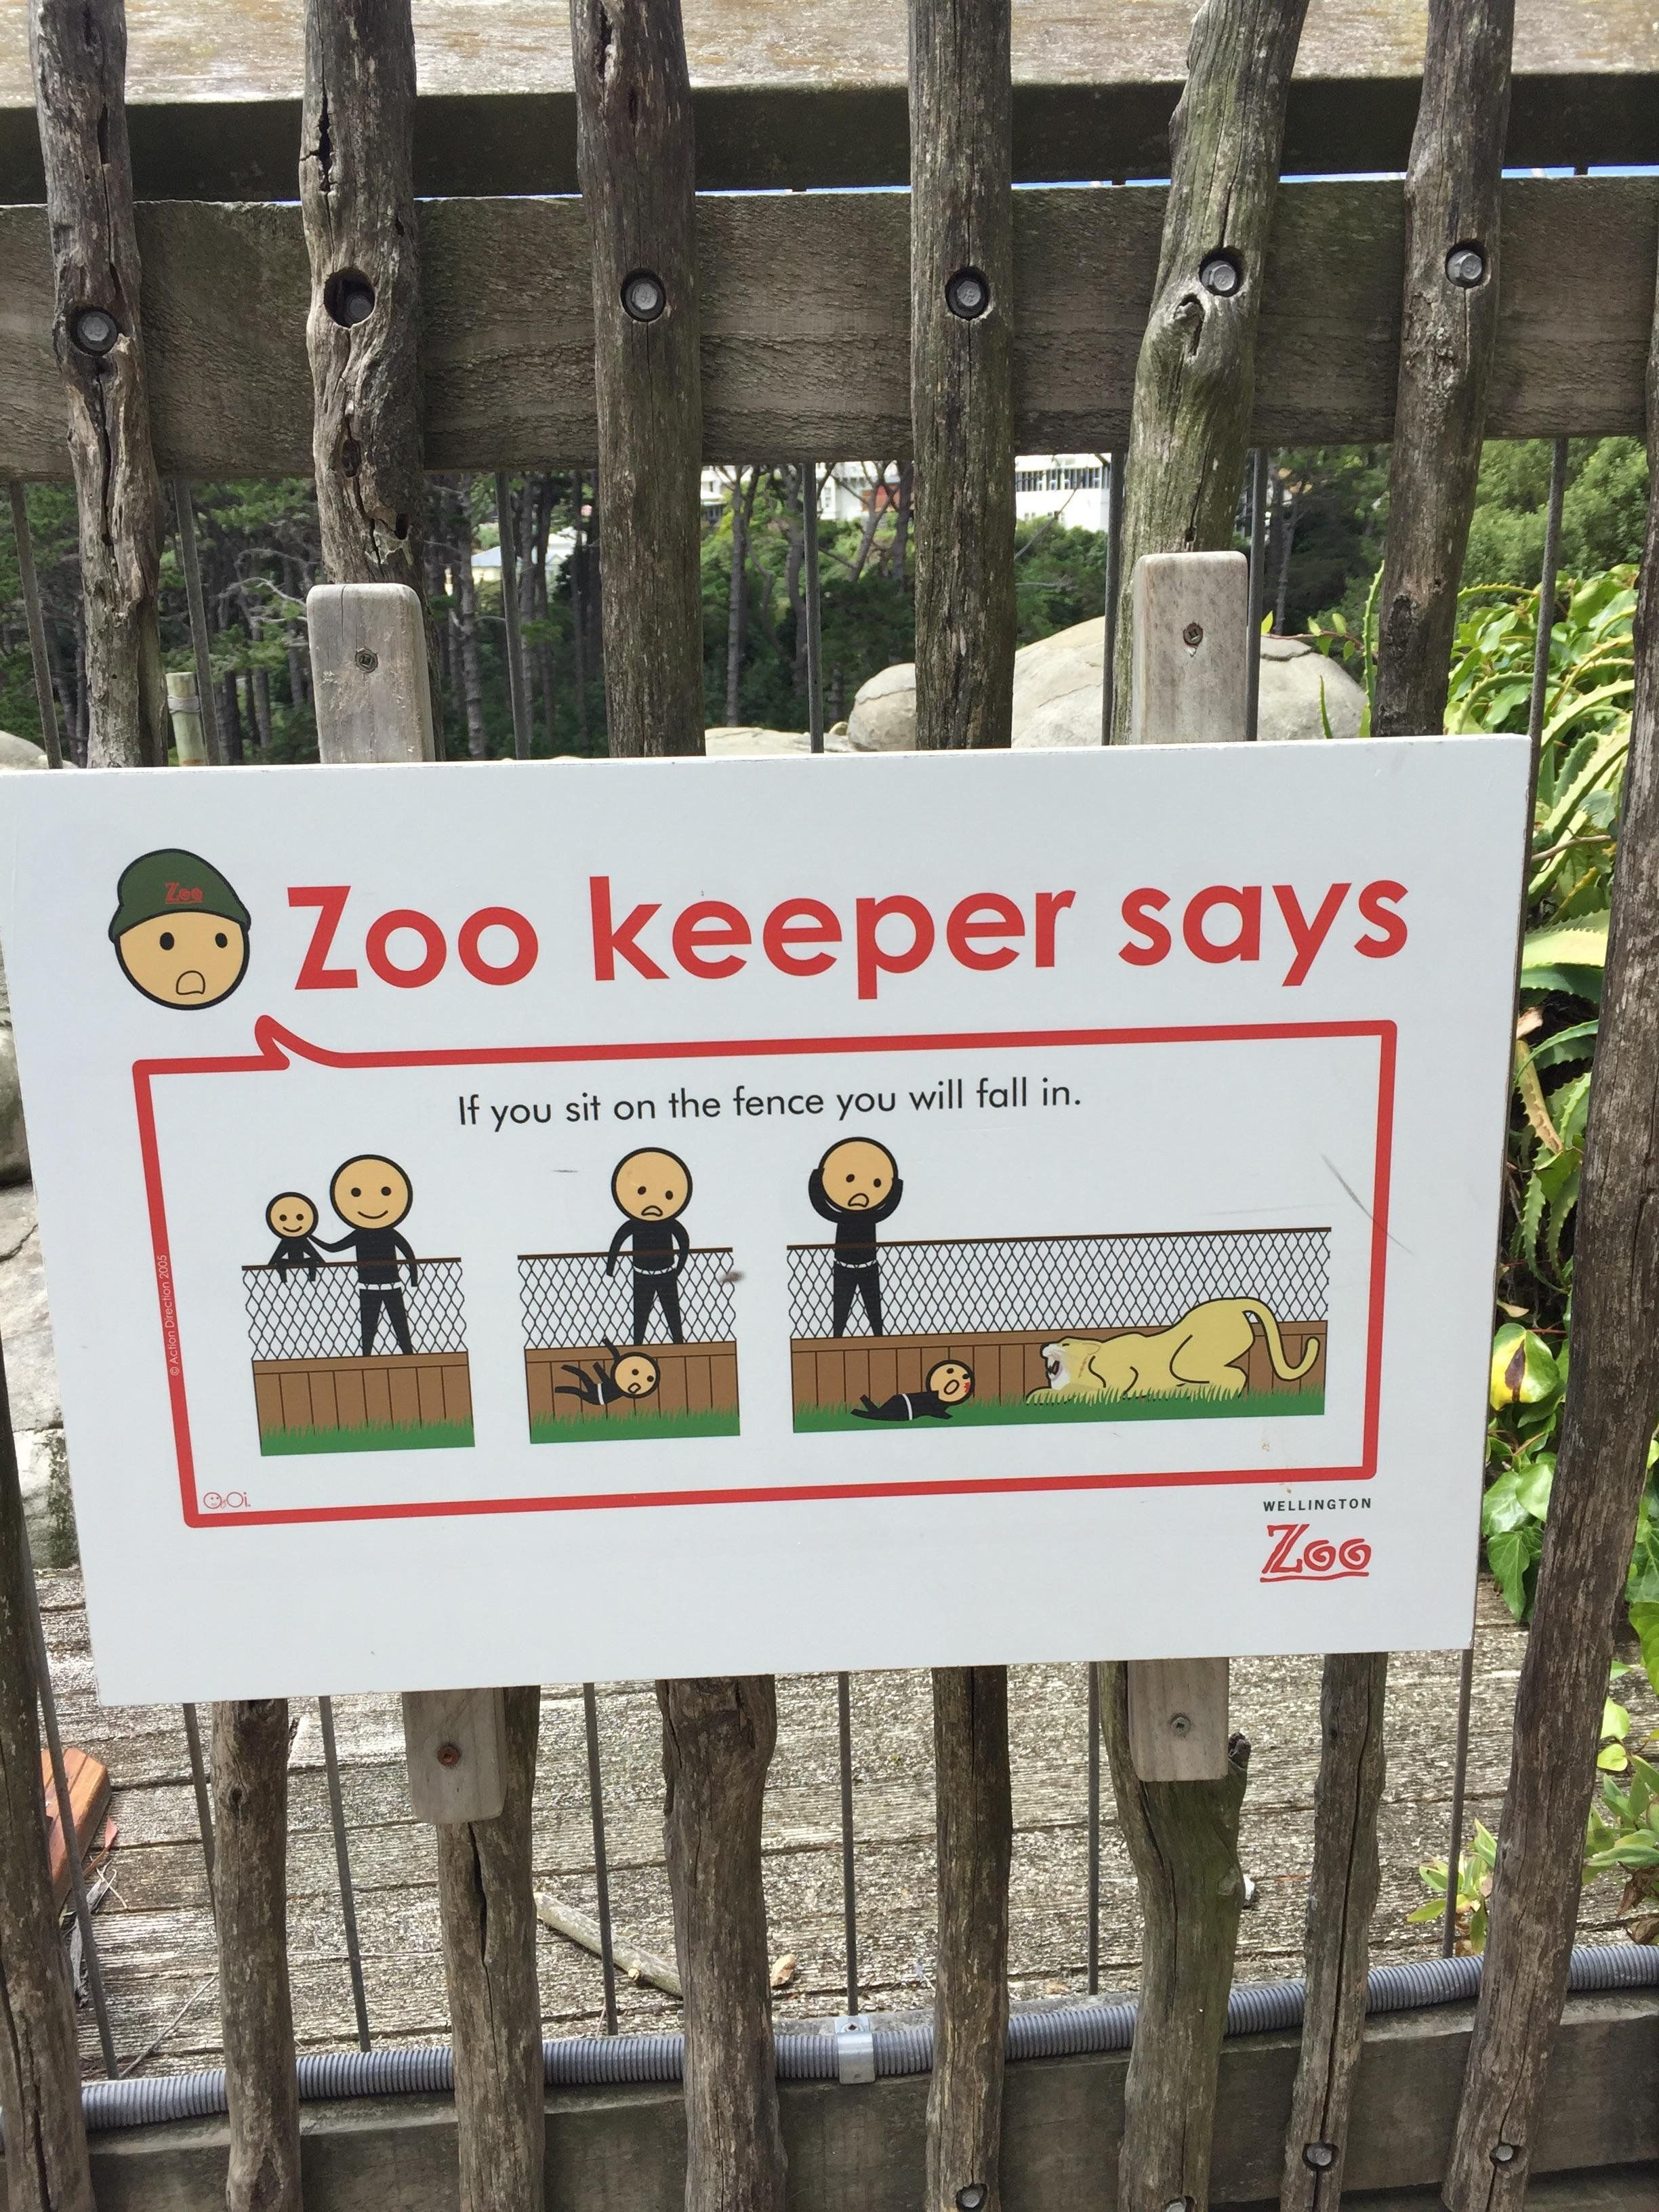 This sign at Wellington Zoo, NZ